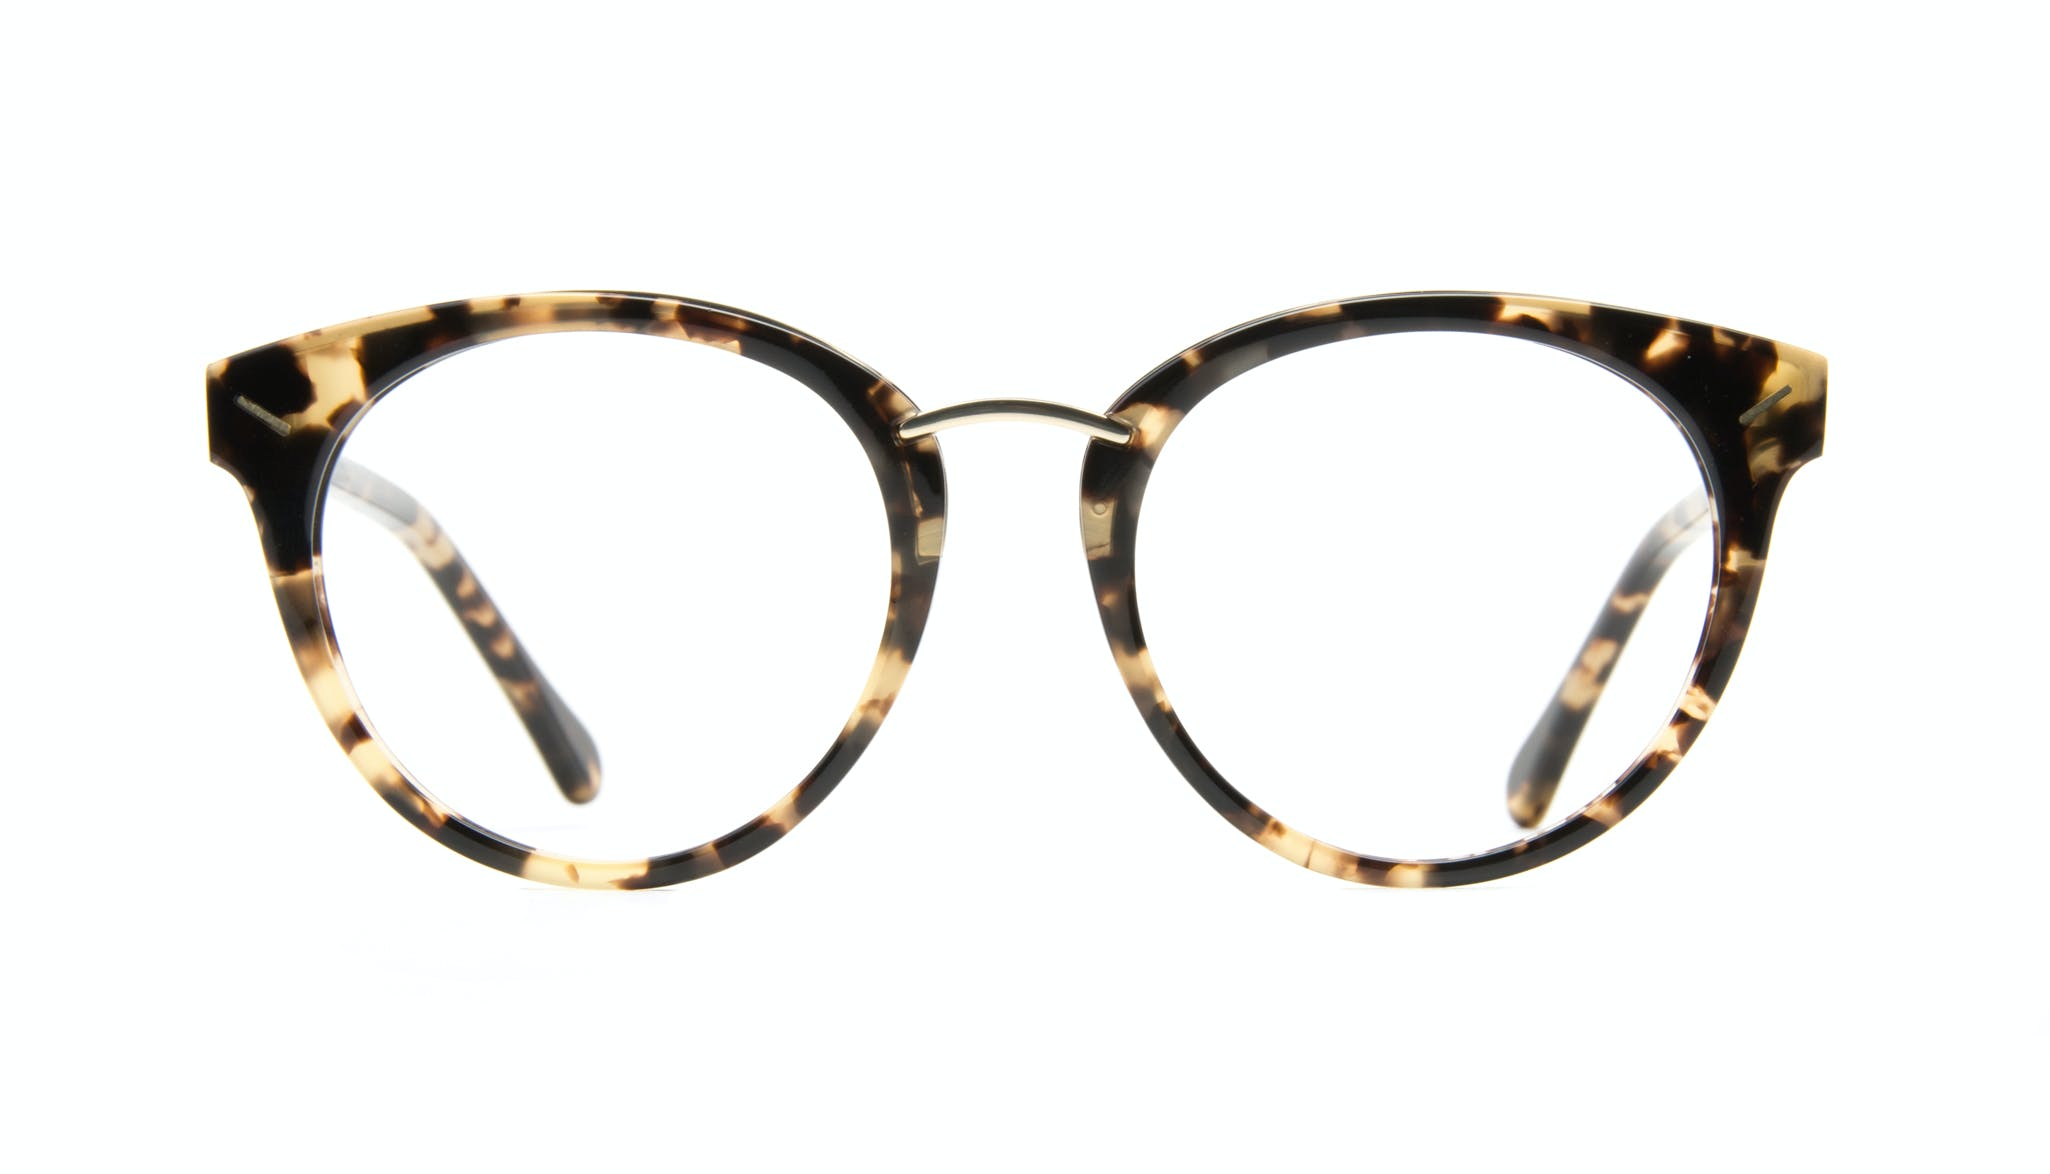 Affordable Fashion Glasses Round Eyeglasses Women Element Gold Tort Front